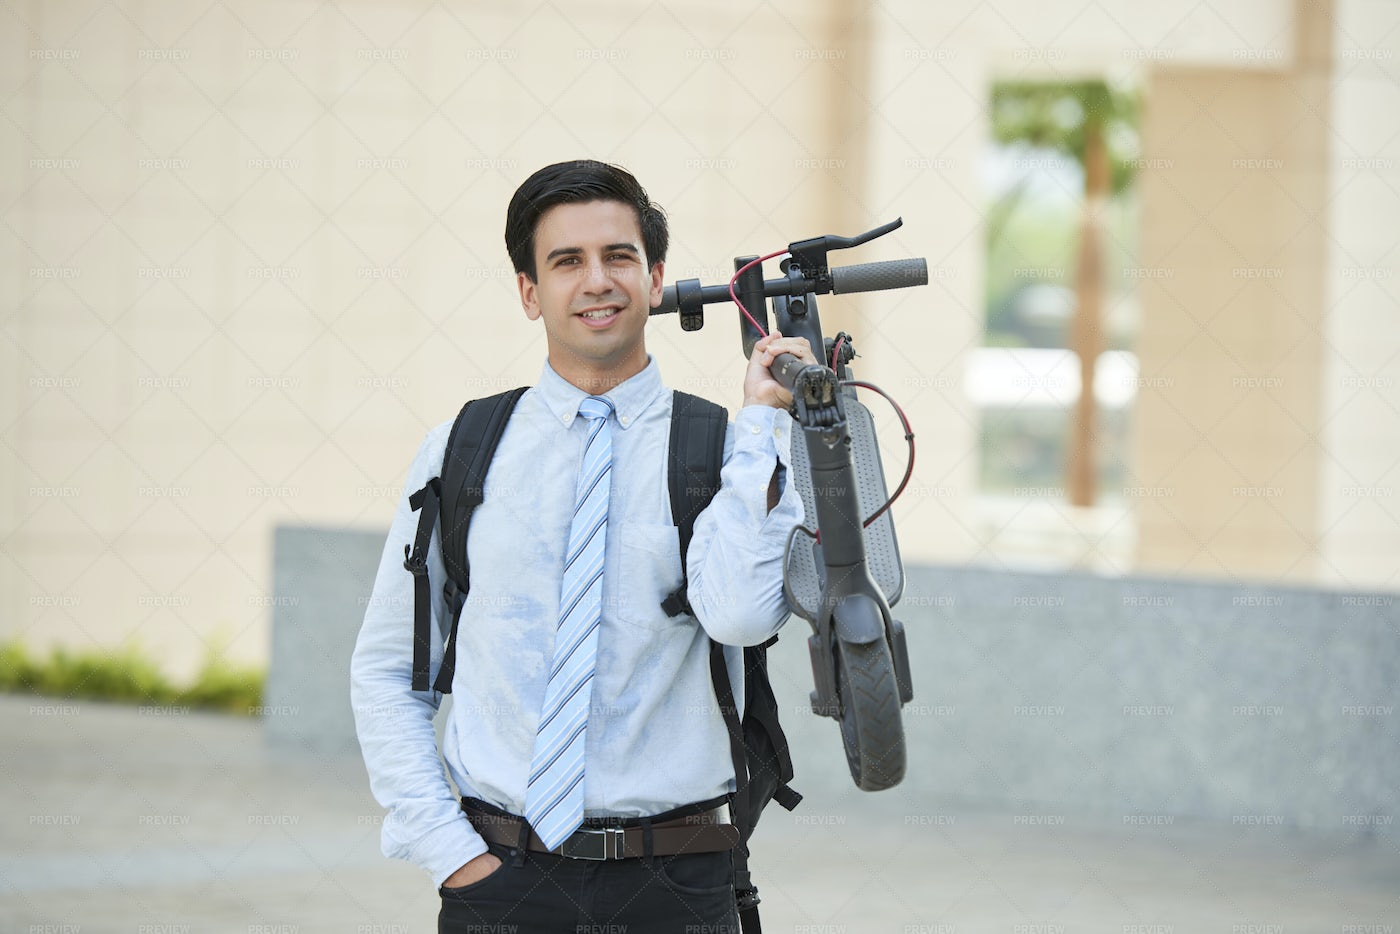 Office Worker Holding Scooter Outdoors: Stock Photos